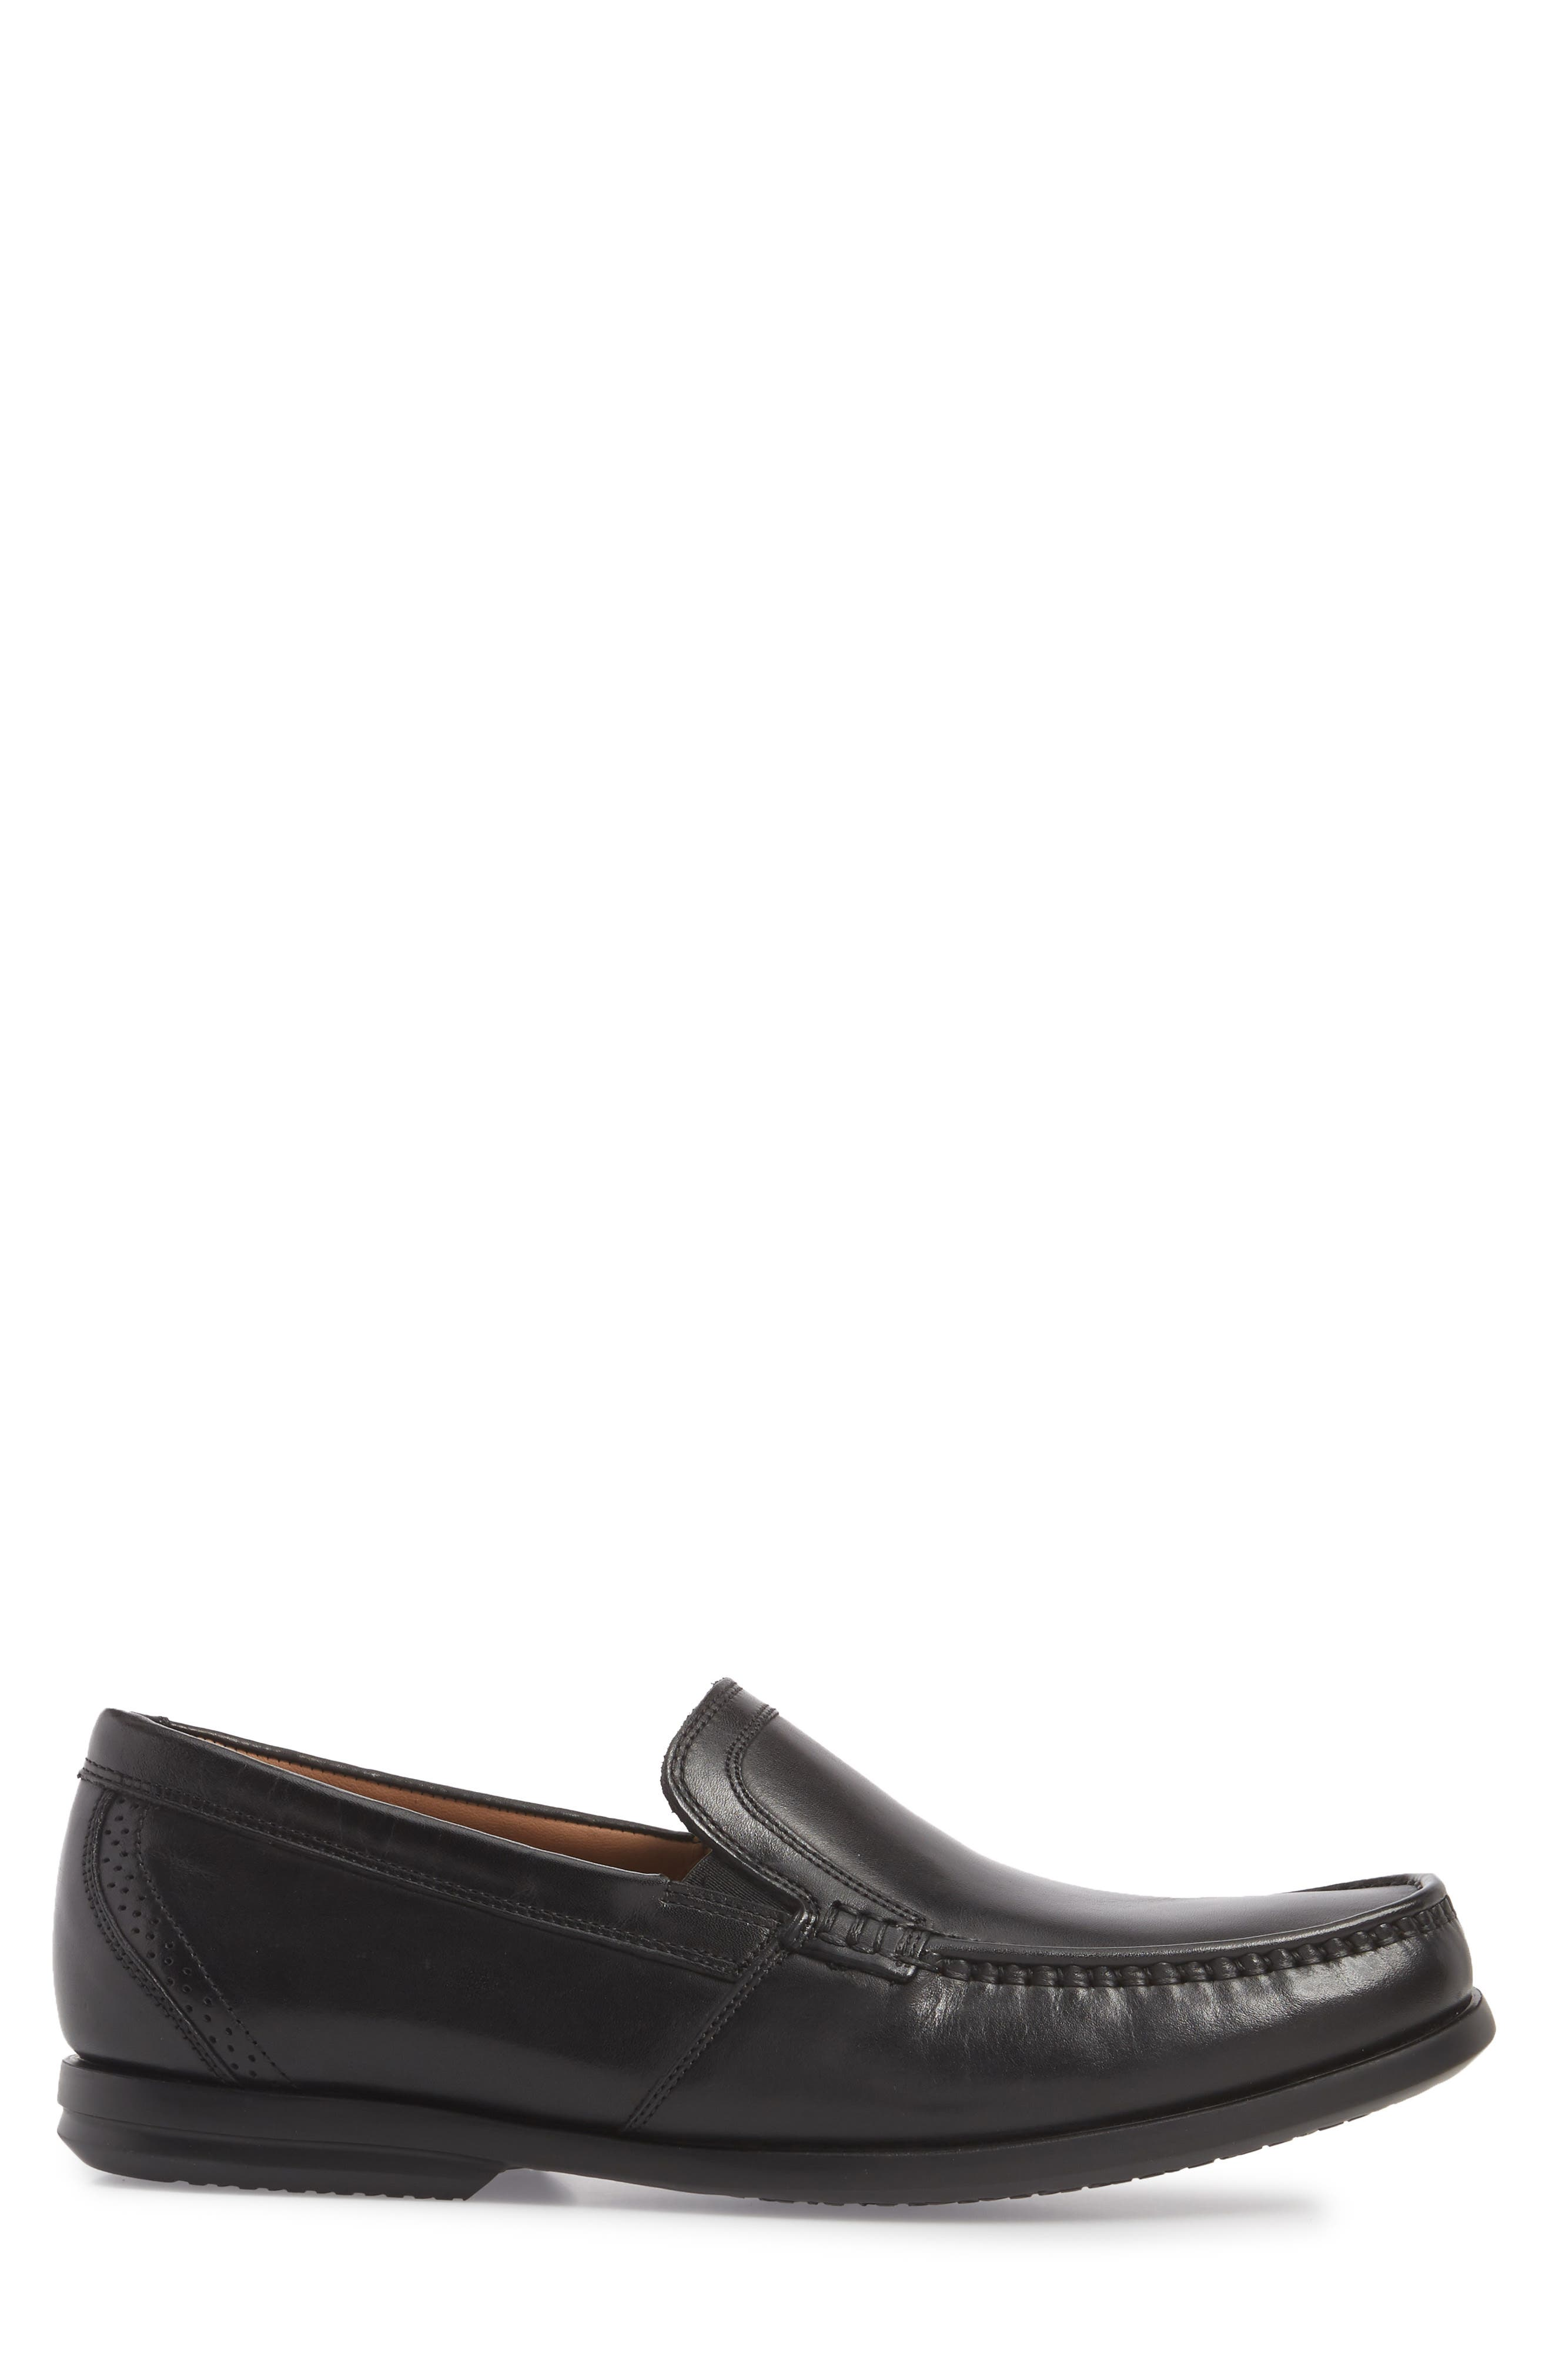 Clarks<sup>®</sup> Ungala Free Venetian Loafer,                             Alternate thumbnail 3, color,                             Black Leather